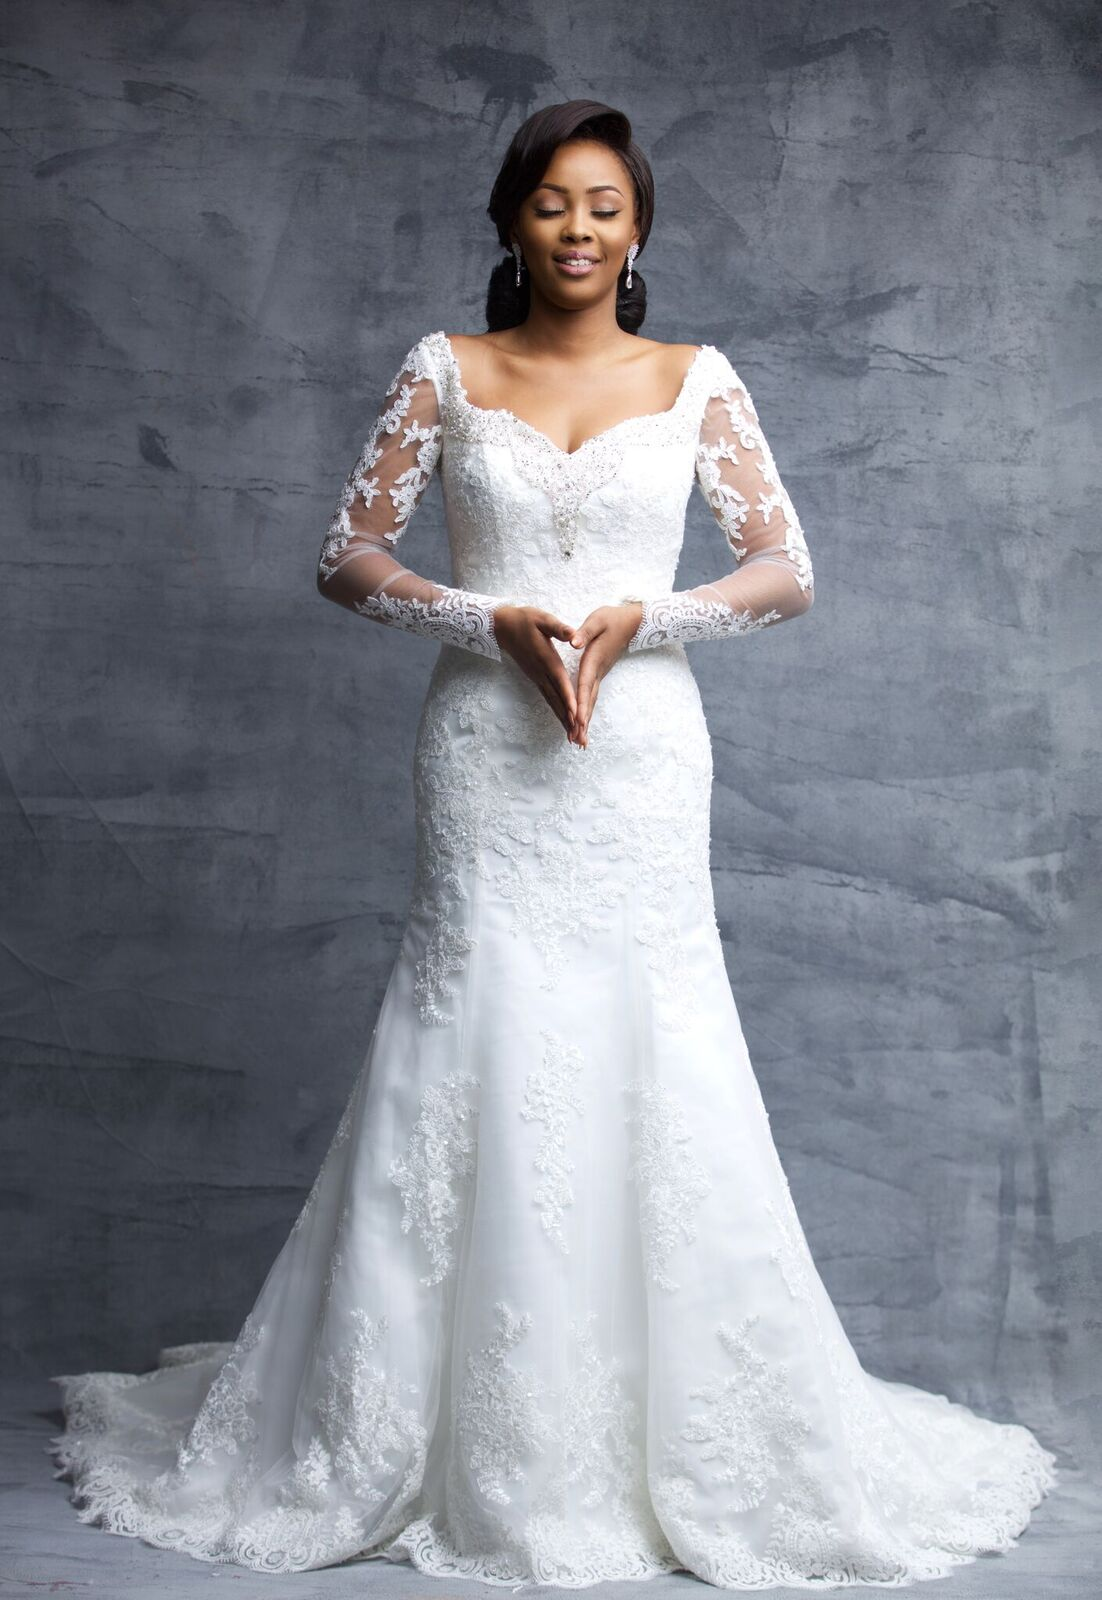 Nicole 7_Love Tims, I Do Weddings New Bridal Collection_2016_BellaNaija